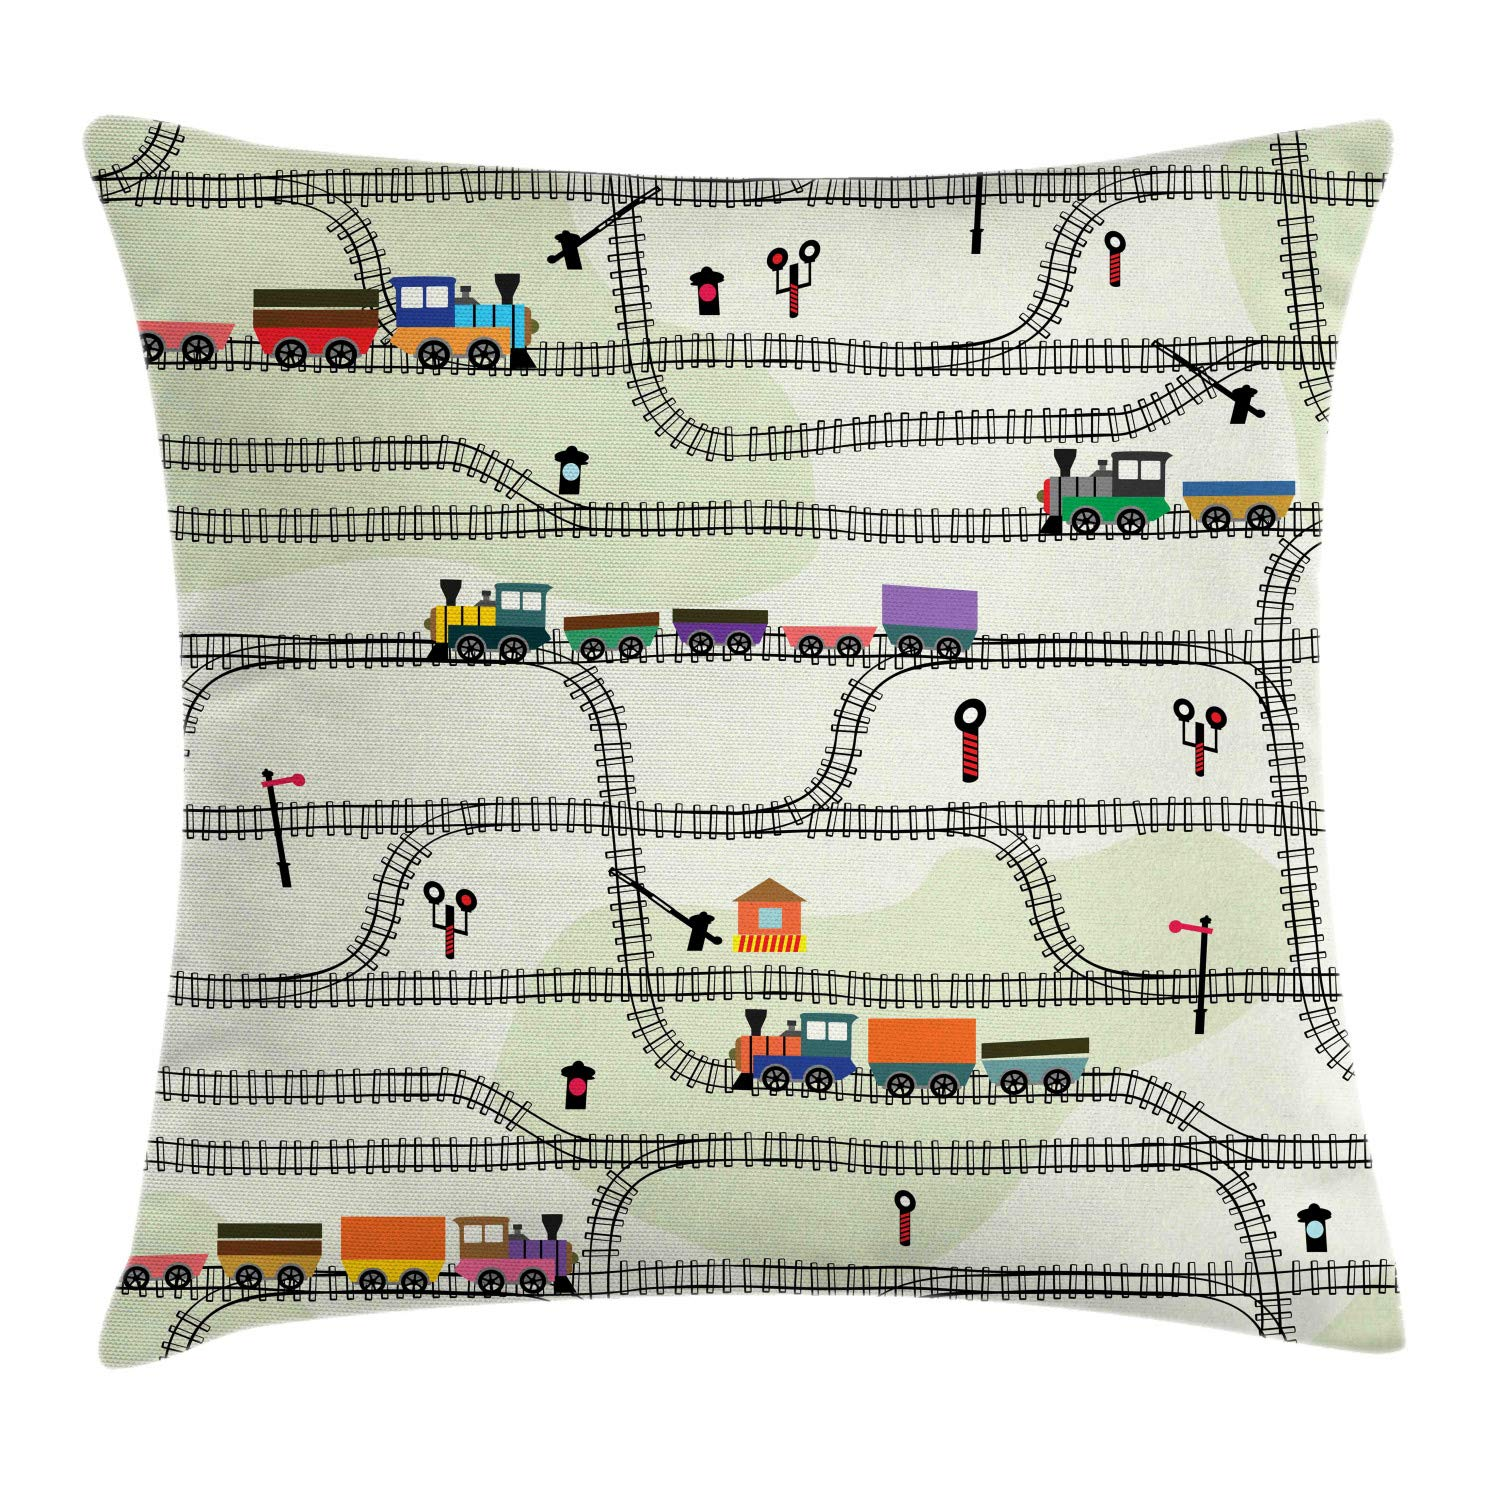 Ambesonne Railroad Throw Pillow Cushion Cover, Nursery Style Arrangement of Roads and Trains Locomotives Cartoon Kids Pattern, Decorative Square Accent Pillow Case, 24'' X 24'', Multicolor by Ambesonne